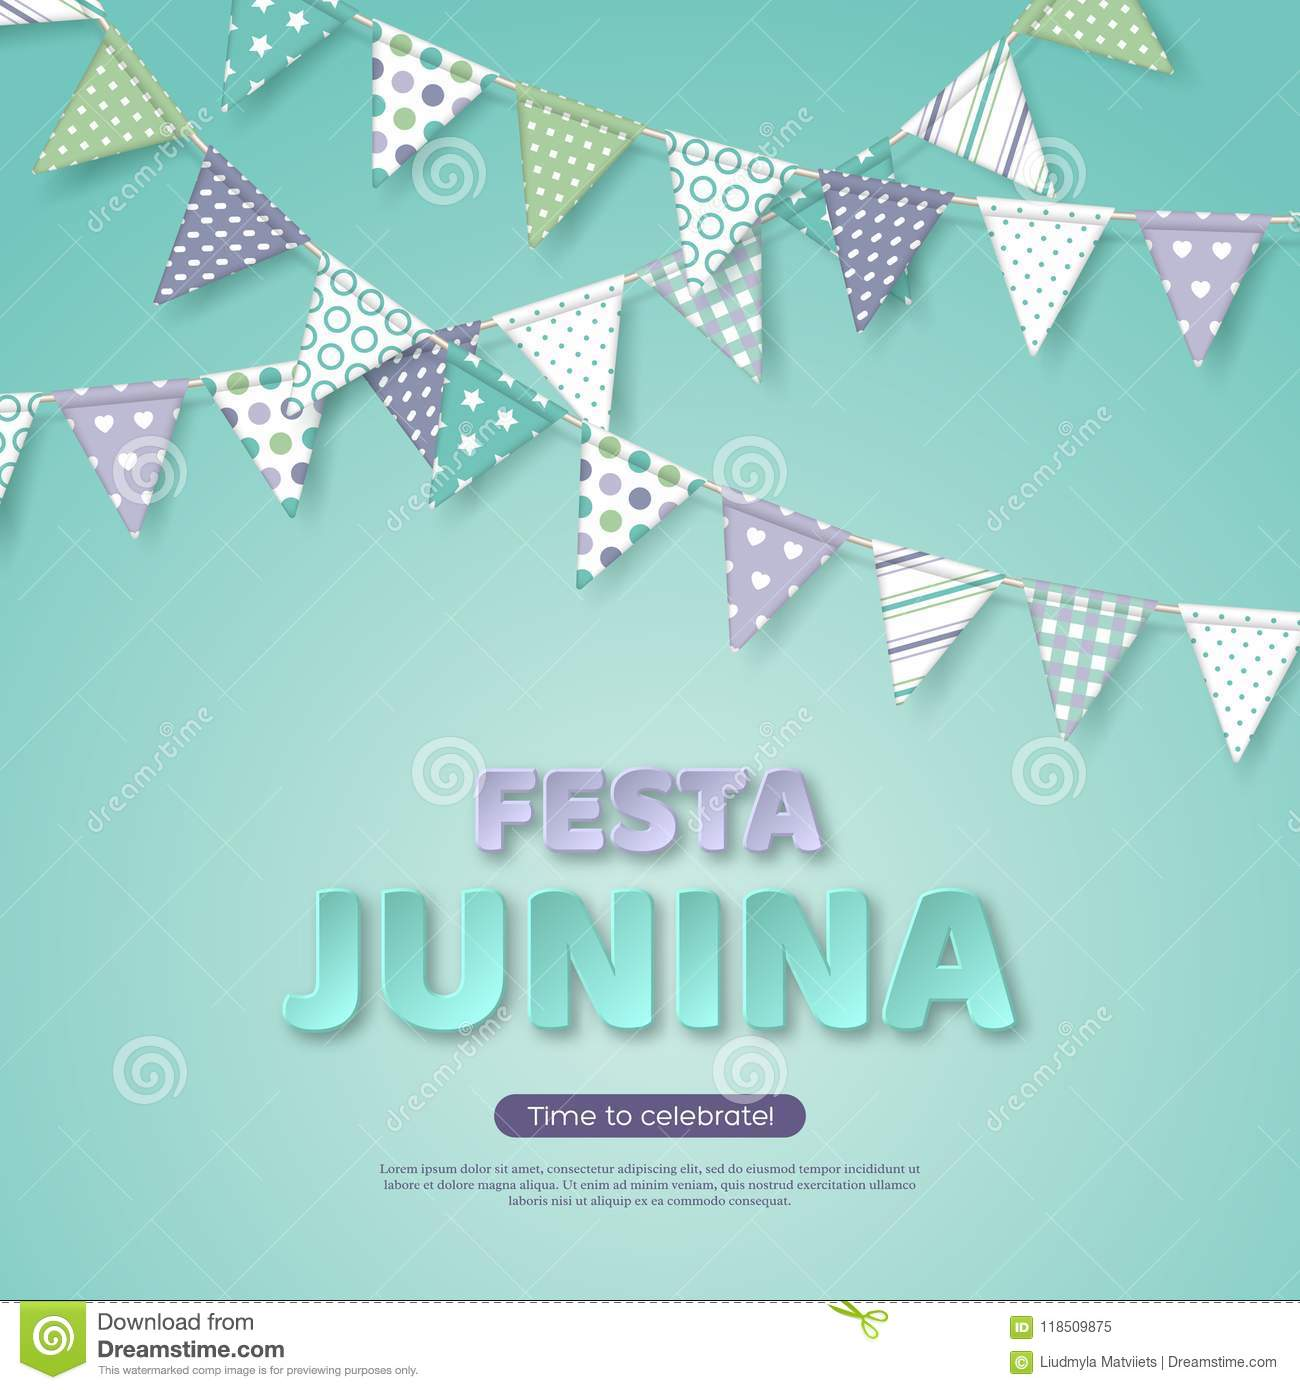 Festa Junina Holiday Design Paper Cut Style Letters With Bunting